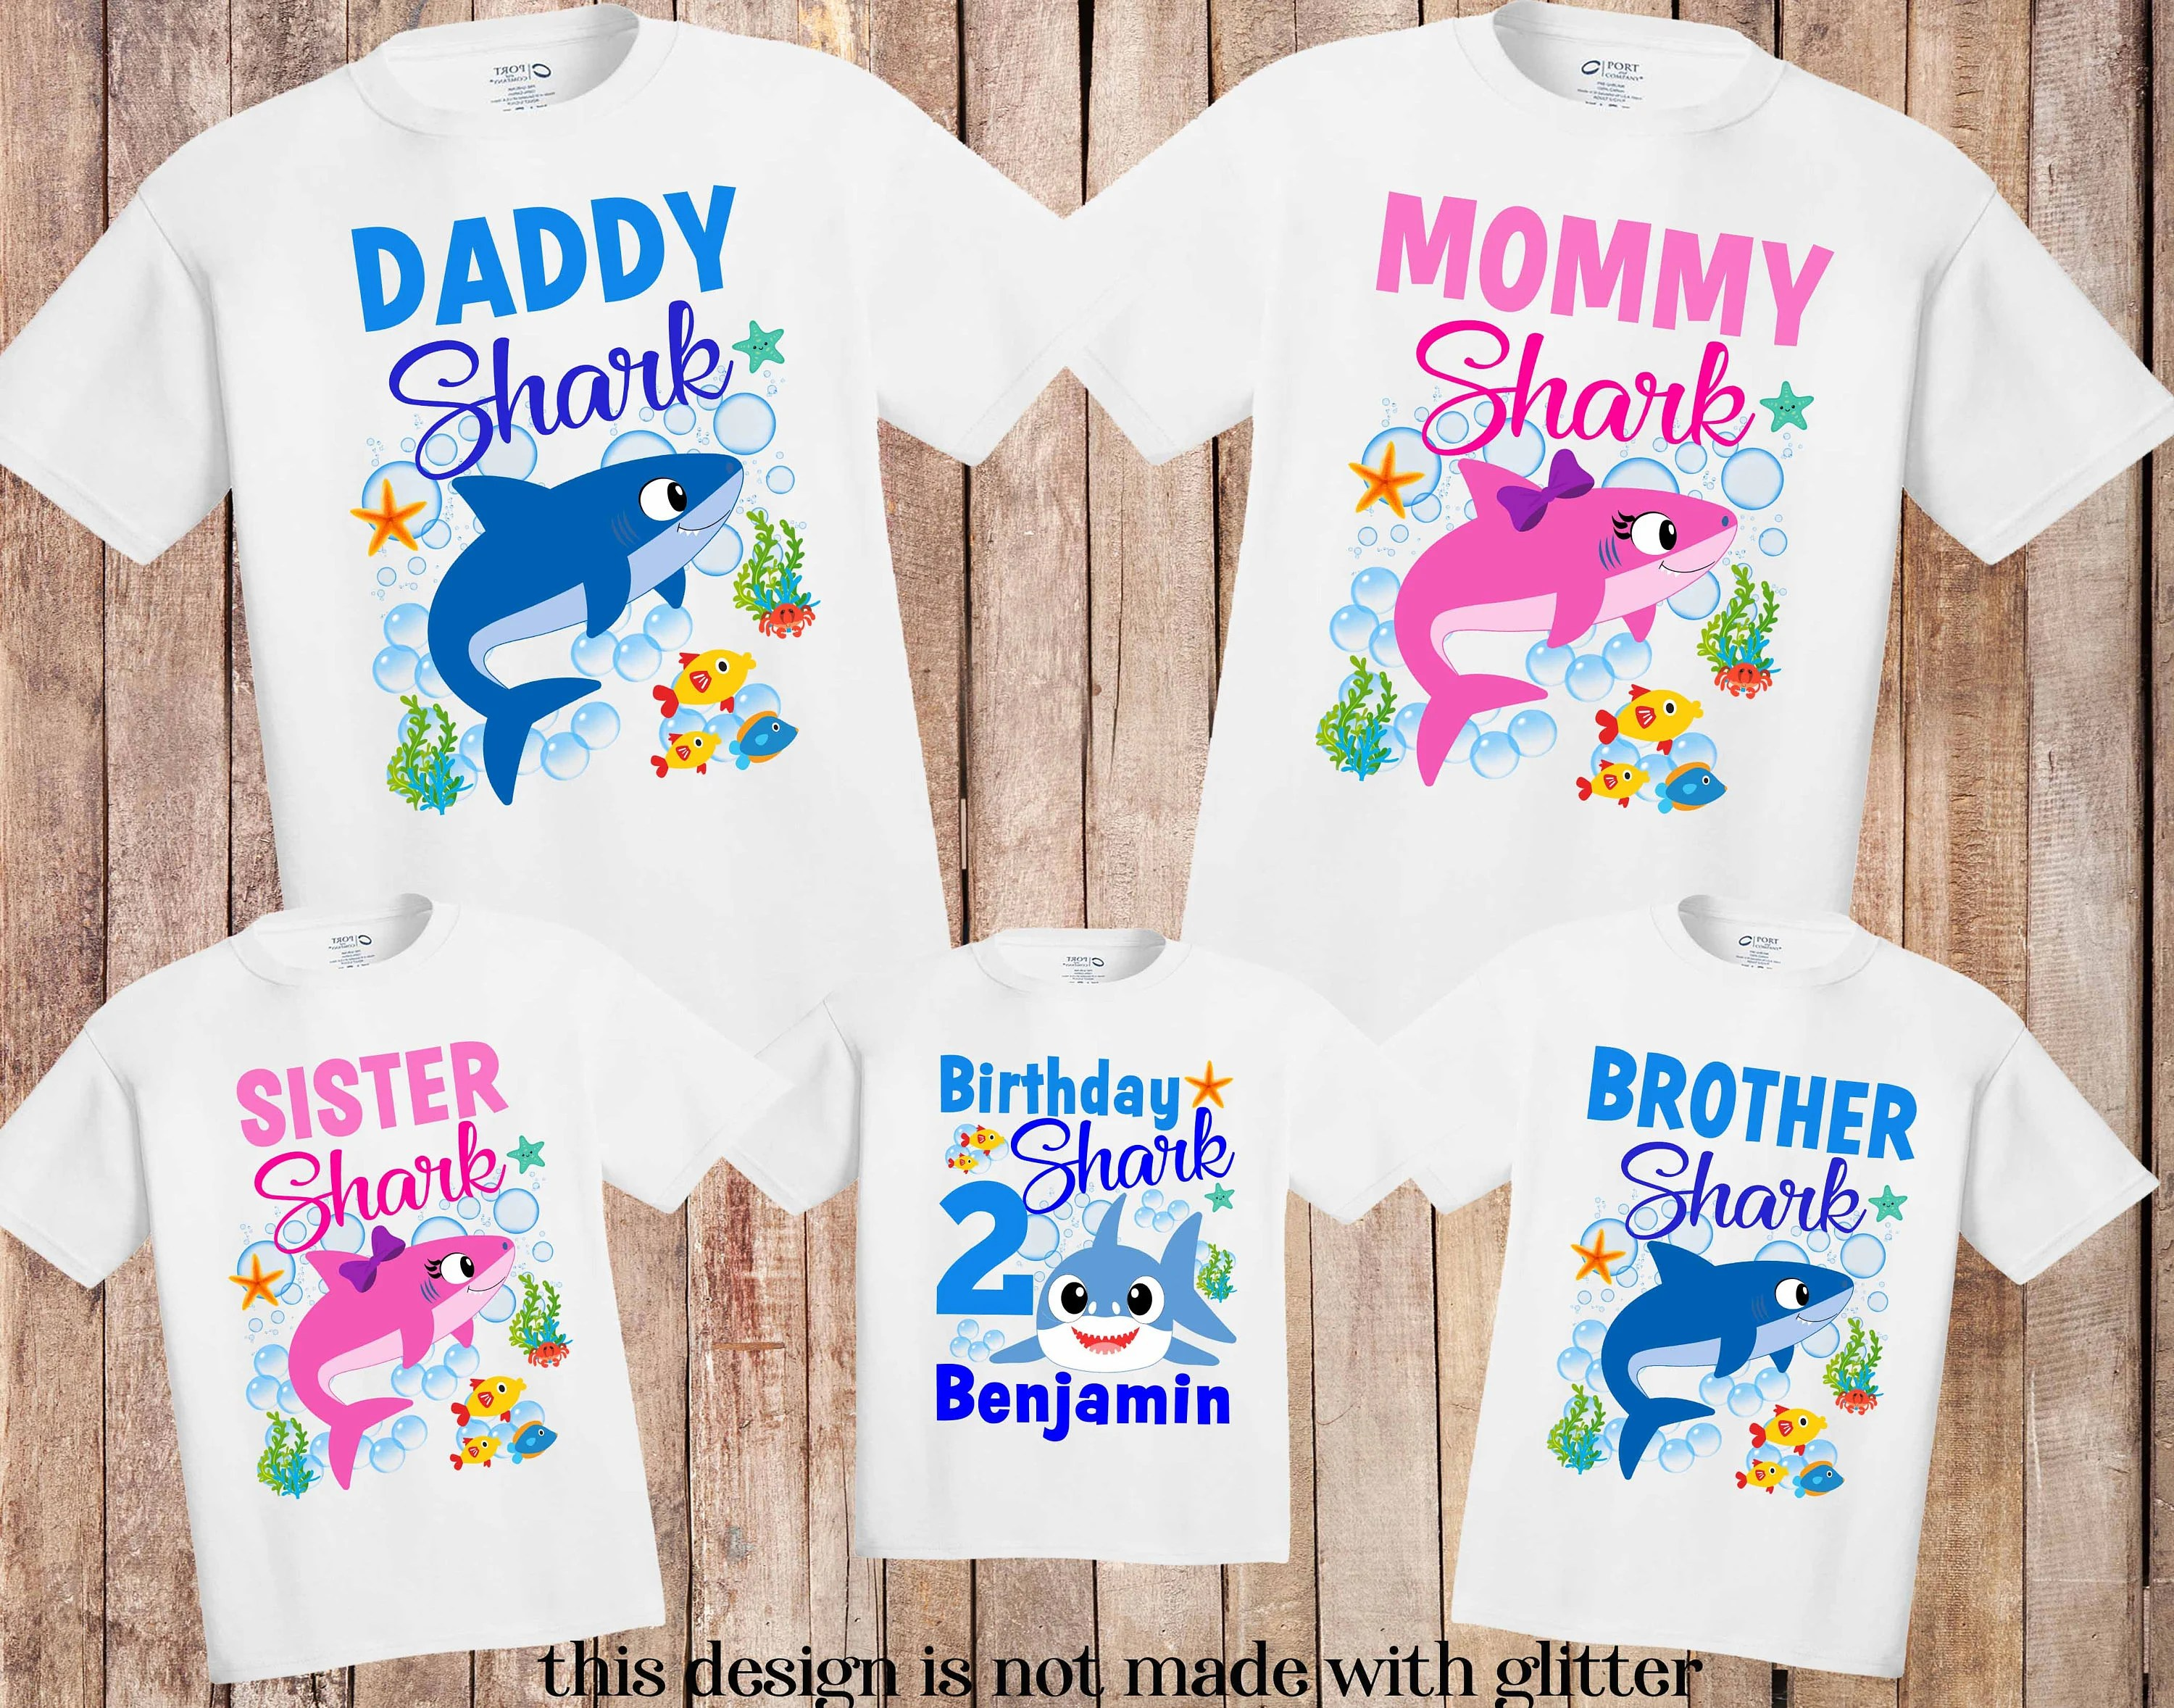 Baby Shark Birthday Shirt Buy Clothes Shoes Online